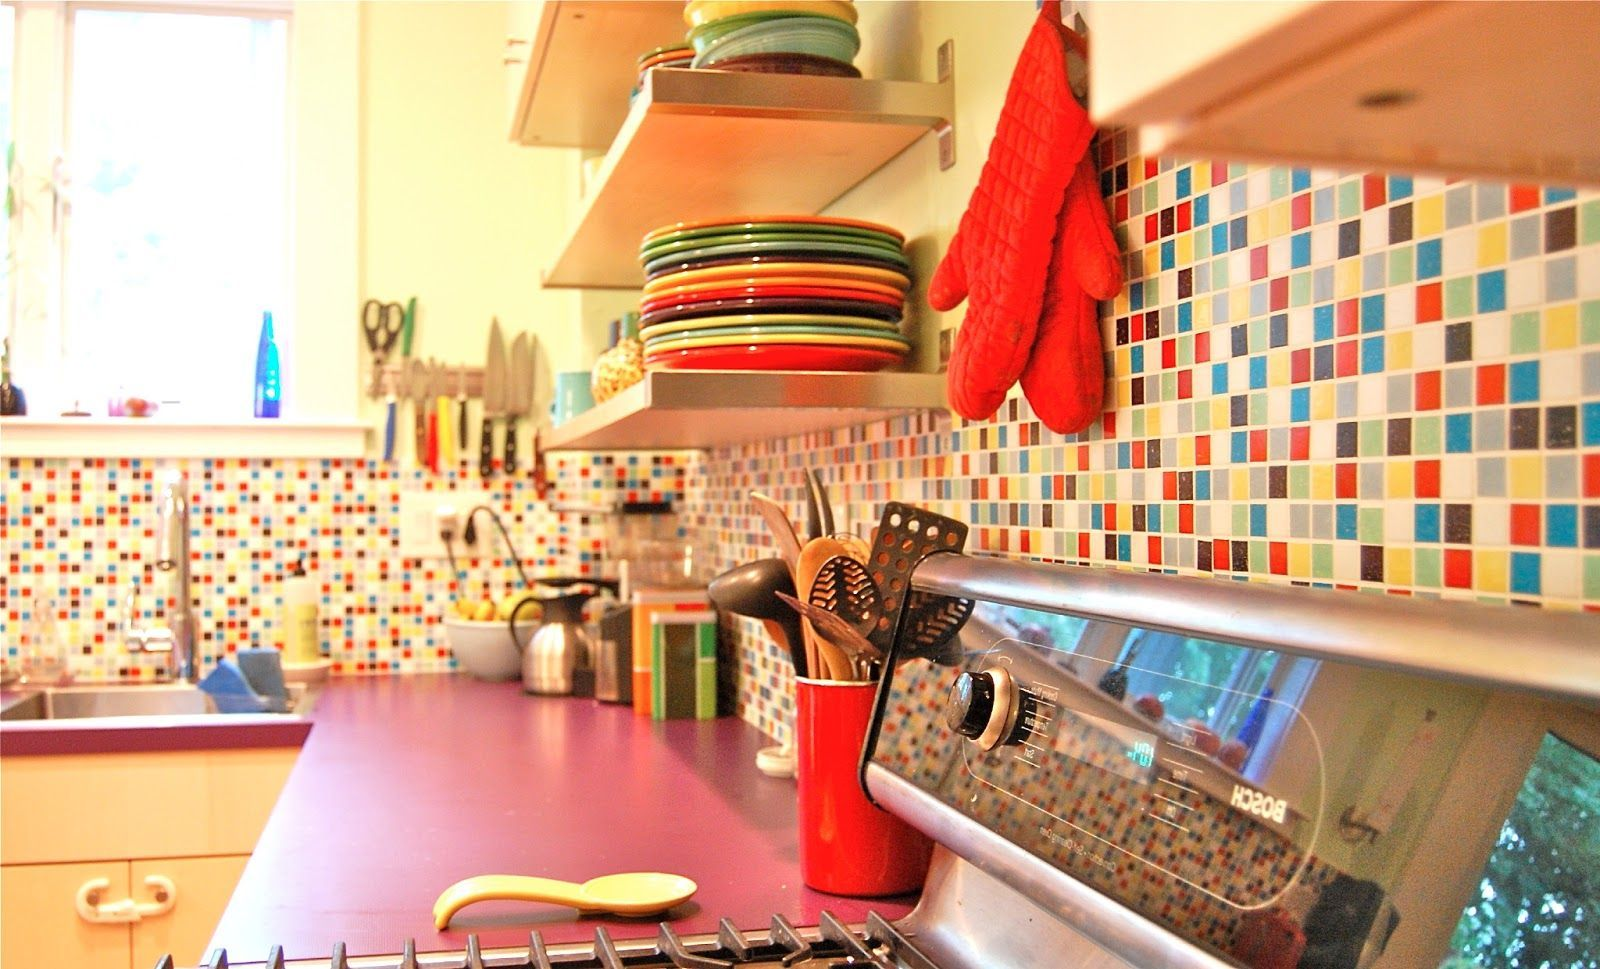 Colorful Kitchen Ideas kitchen , colorful kitchen ideas; playing with backsplashes colors